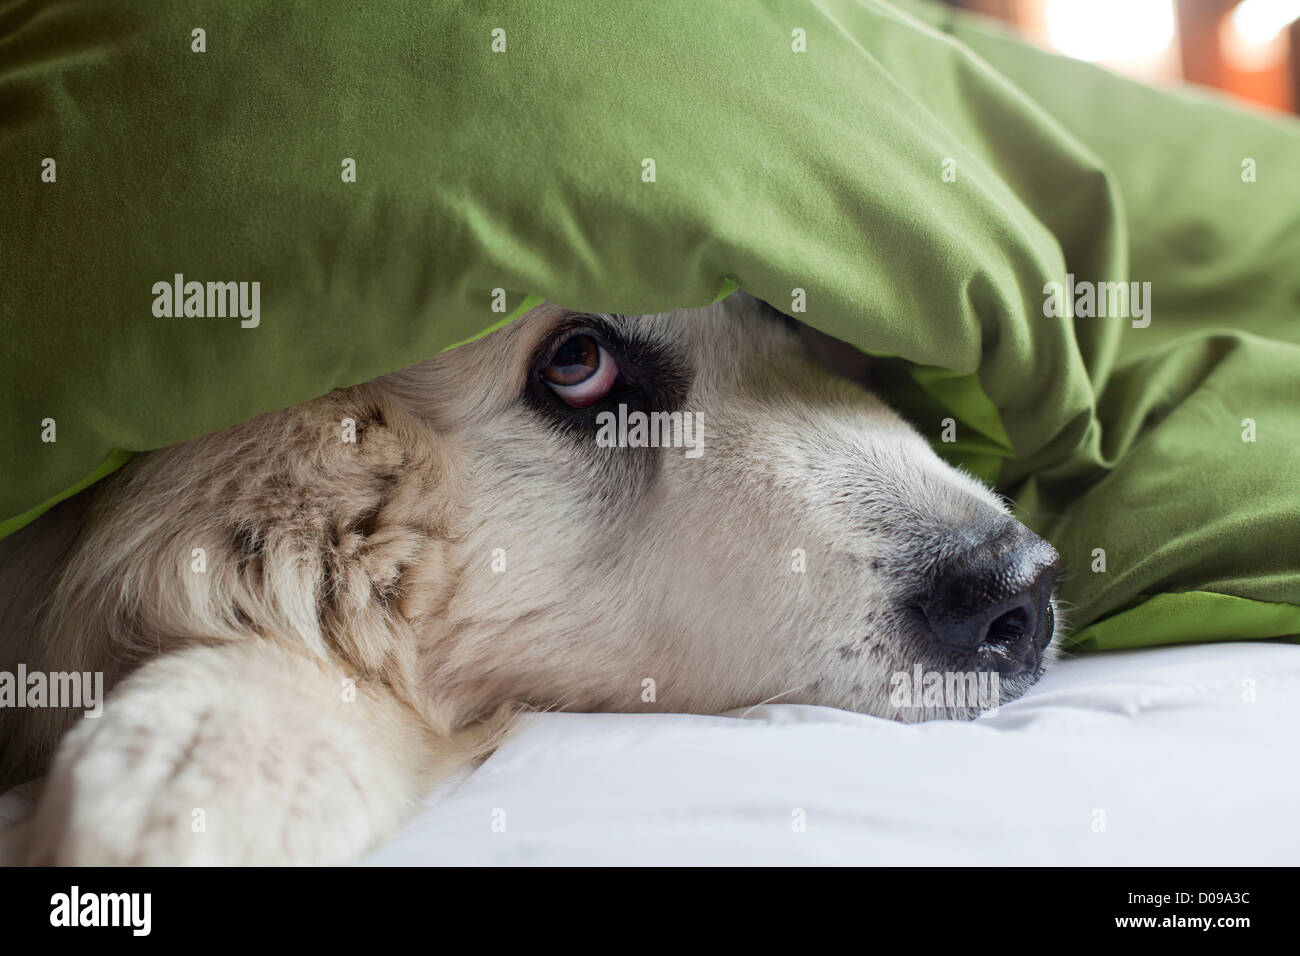 Great Pyrenees dog peeking out from under blanket on bed. - Stock Image